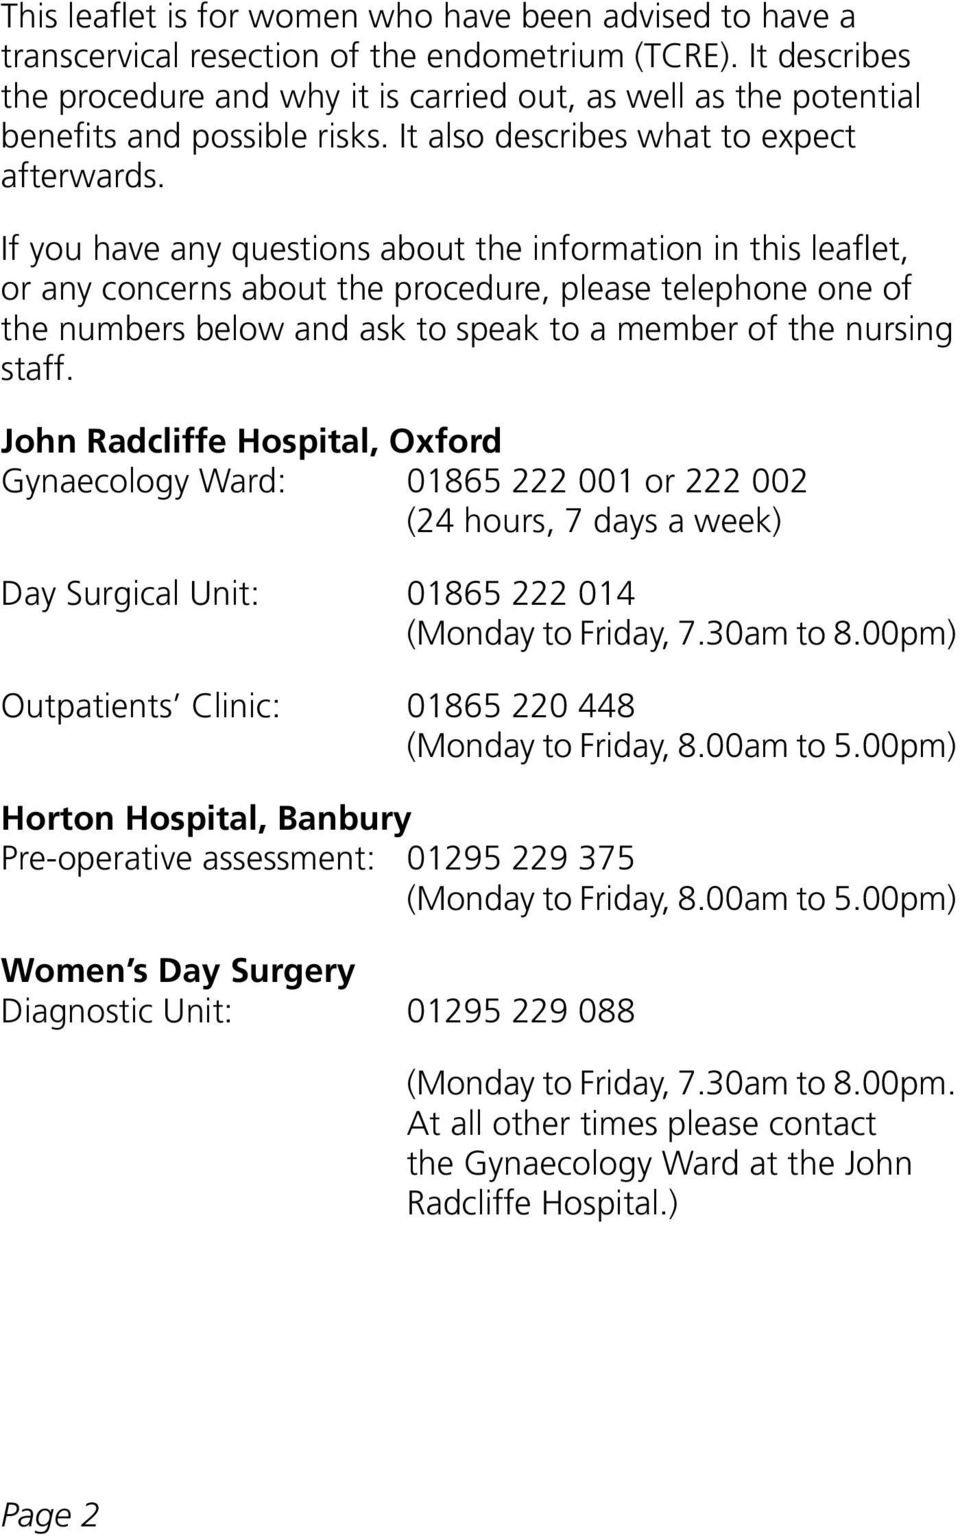 If you have any questions about the information in this leaflet, or any concerns about the procedure, please telephone one of the numbers below and ask to speak to a member of the nursing staff.